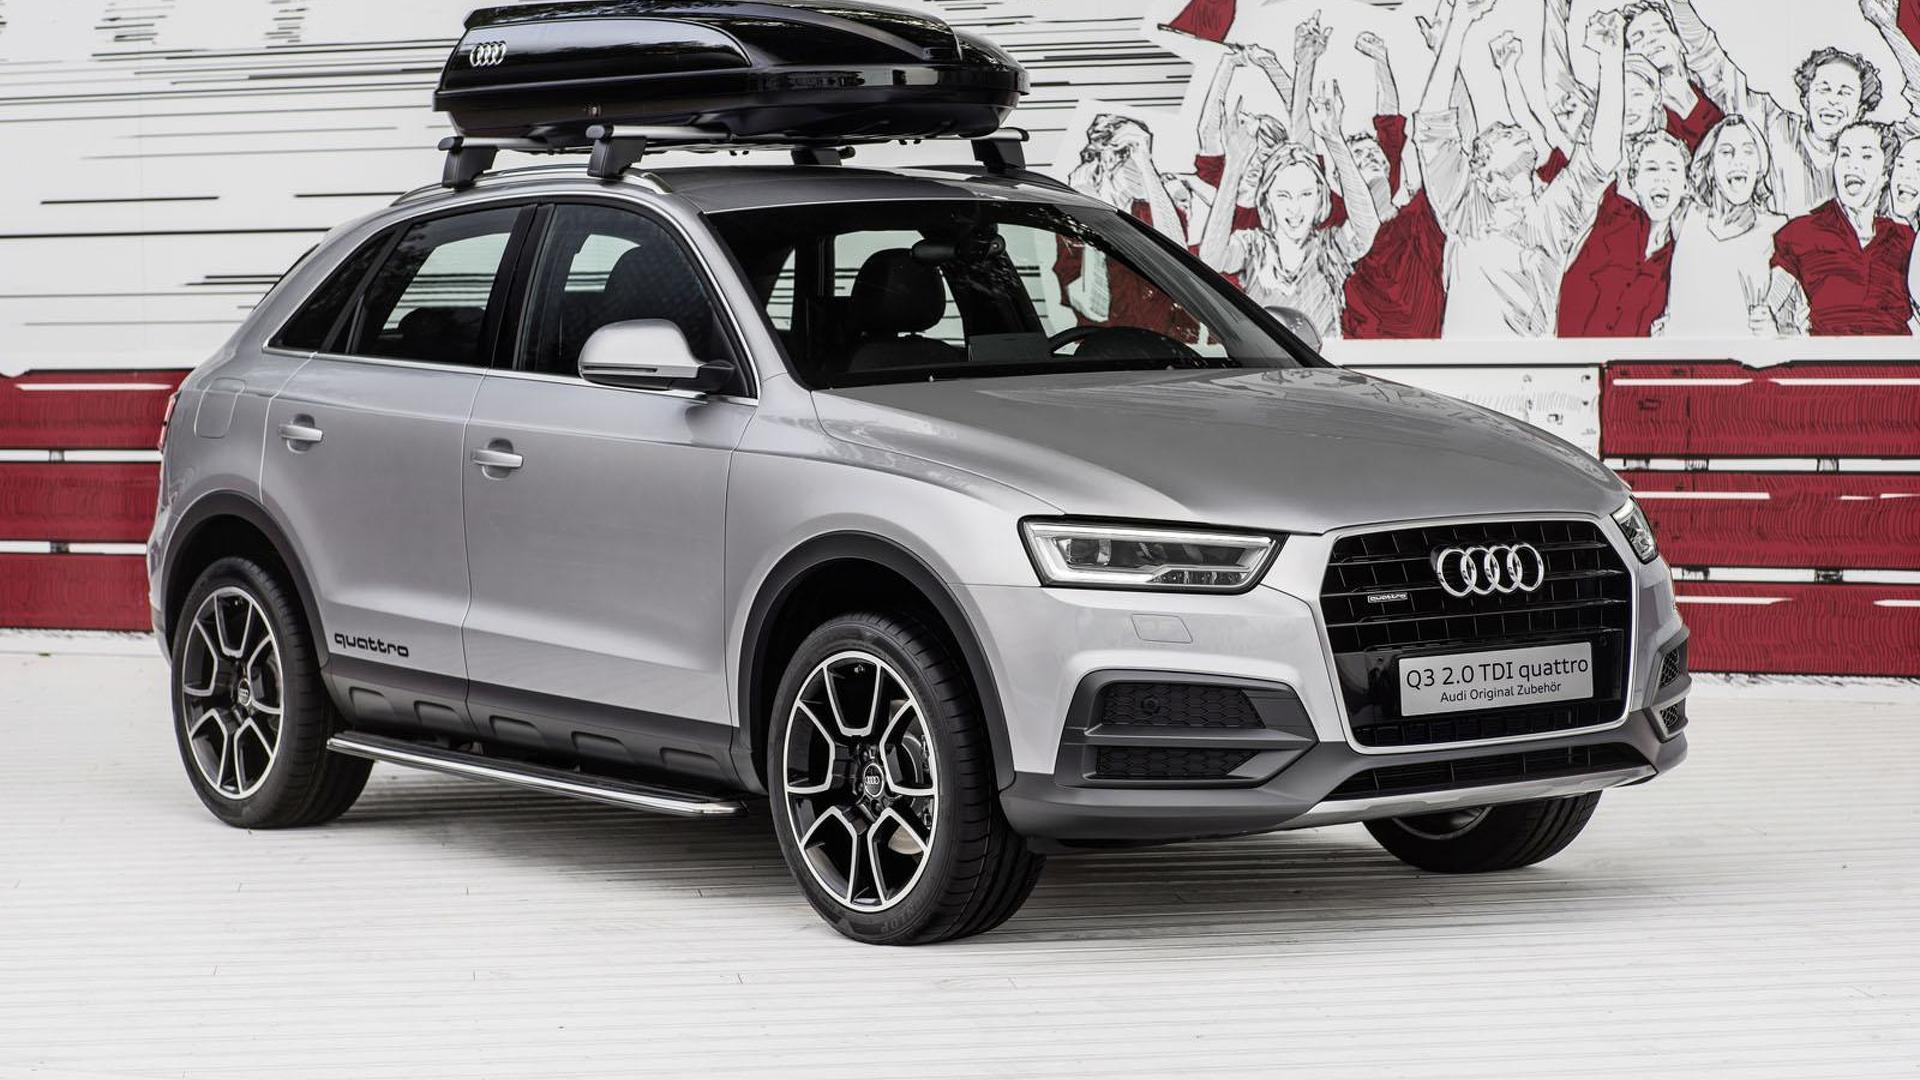 audi shows off their q3 offroad style